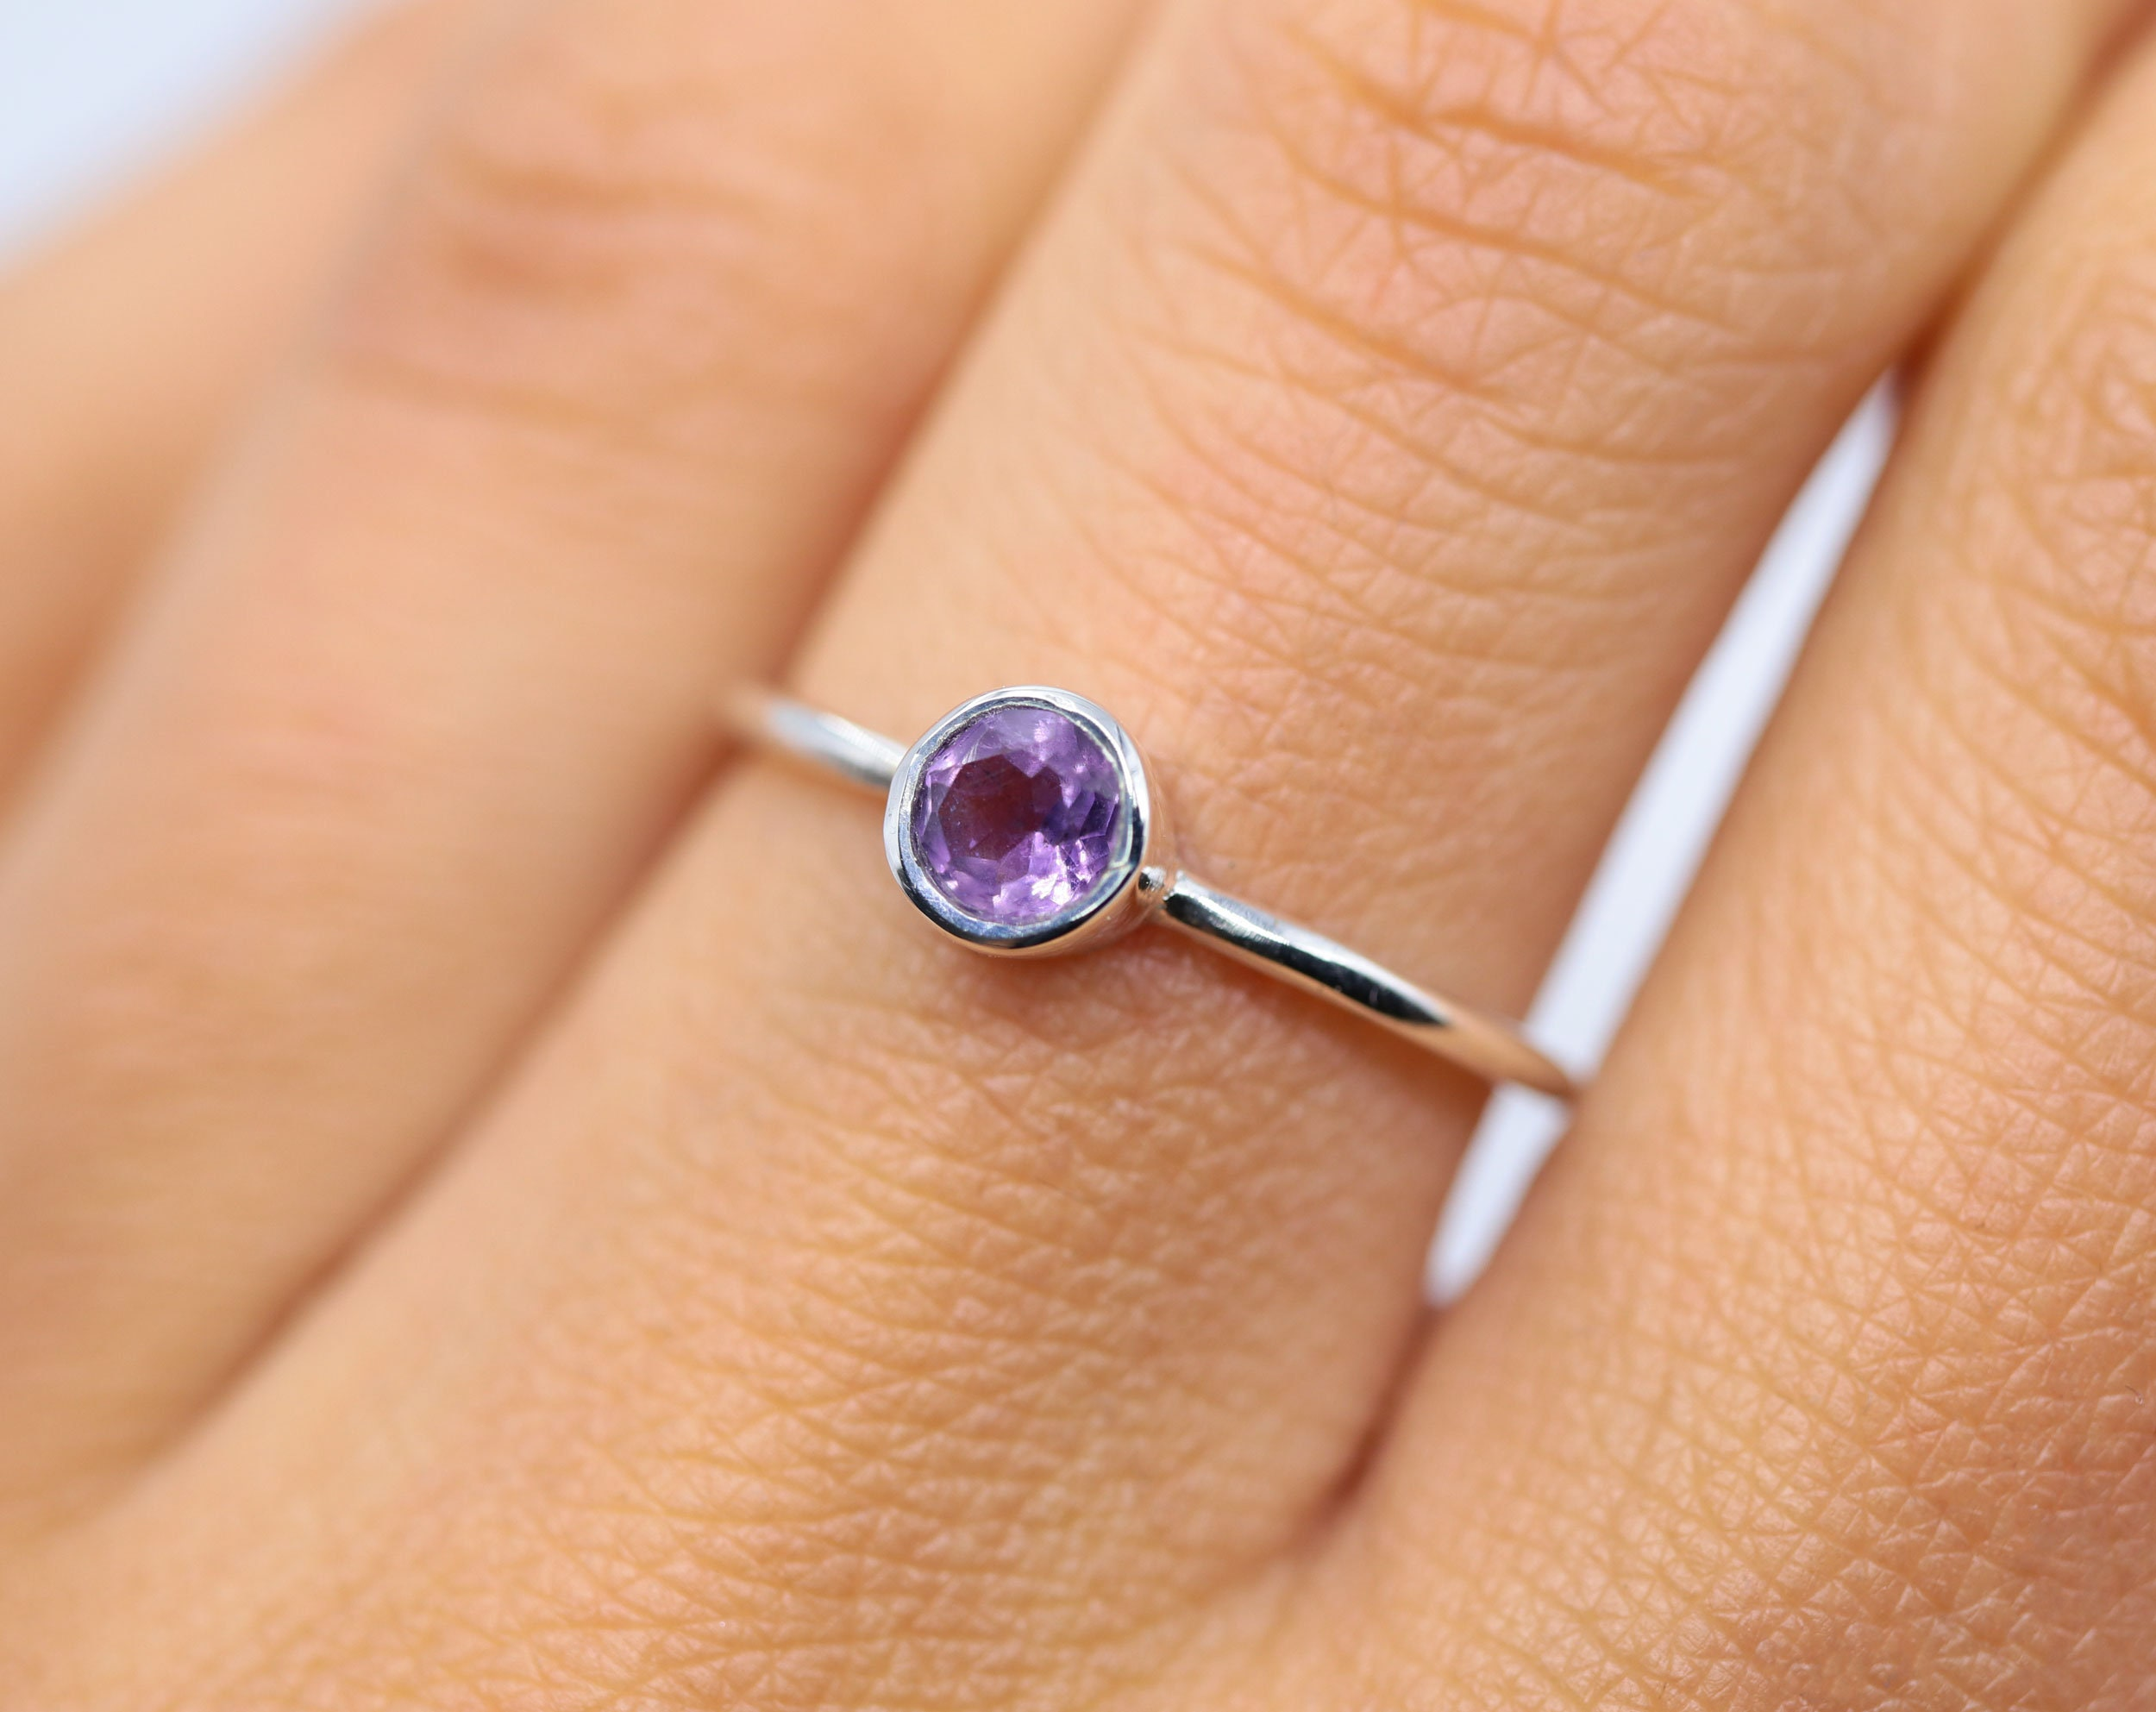 Natural amethyst ring, silver ring, womens ring, amethyst jewelry, simple  ring, birthstone ring, thin ring, february ring, s21 ring